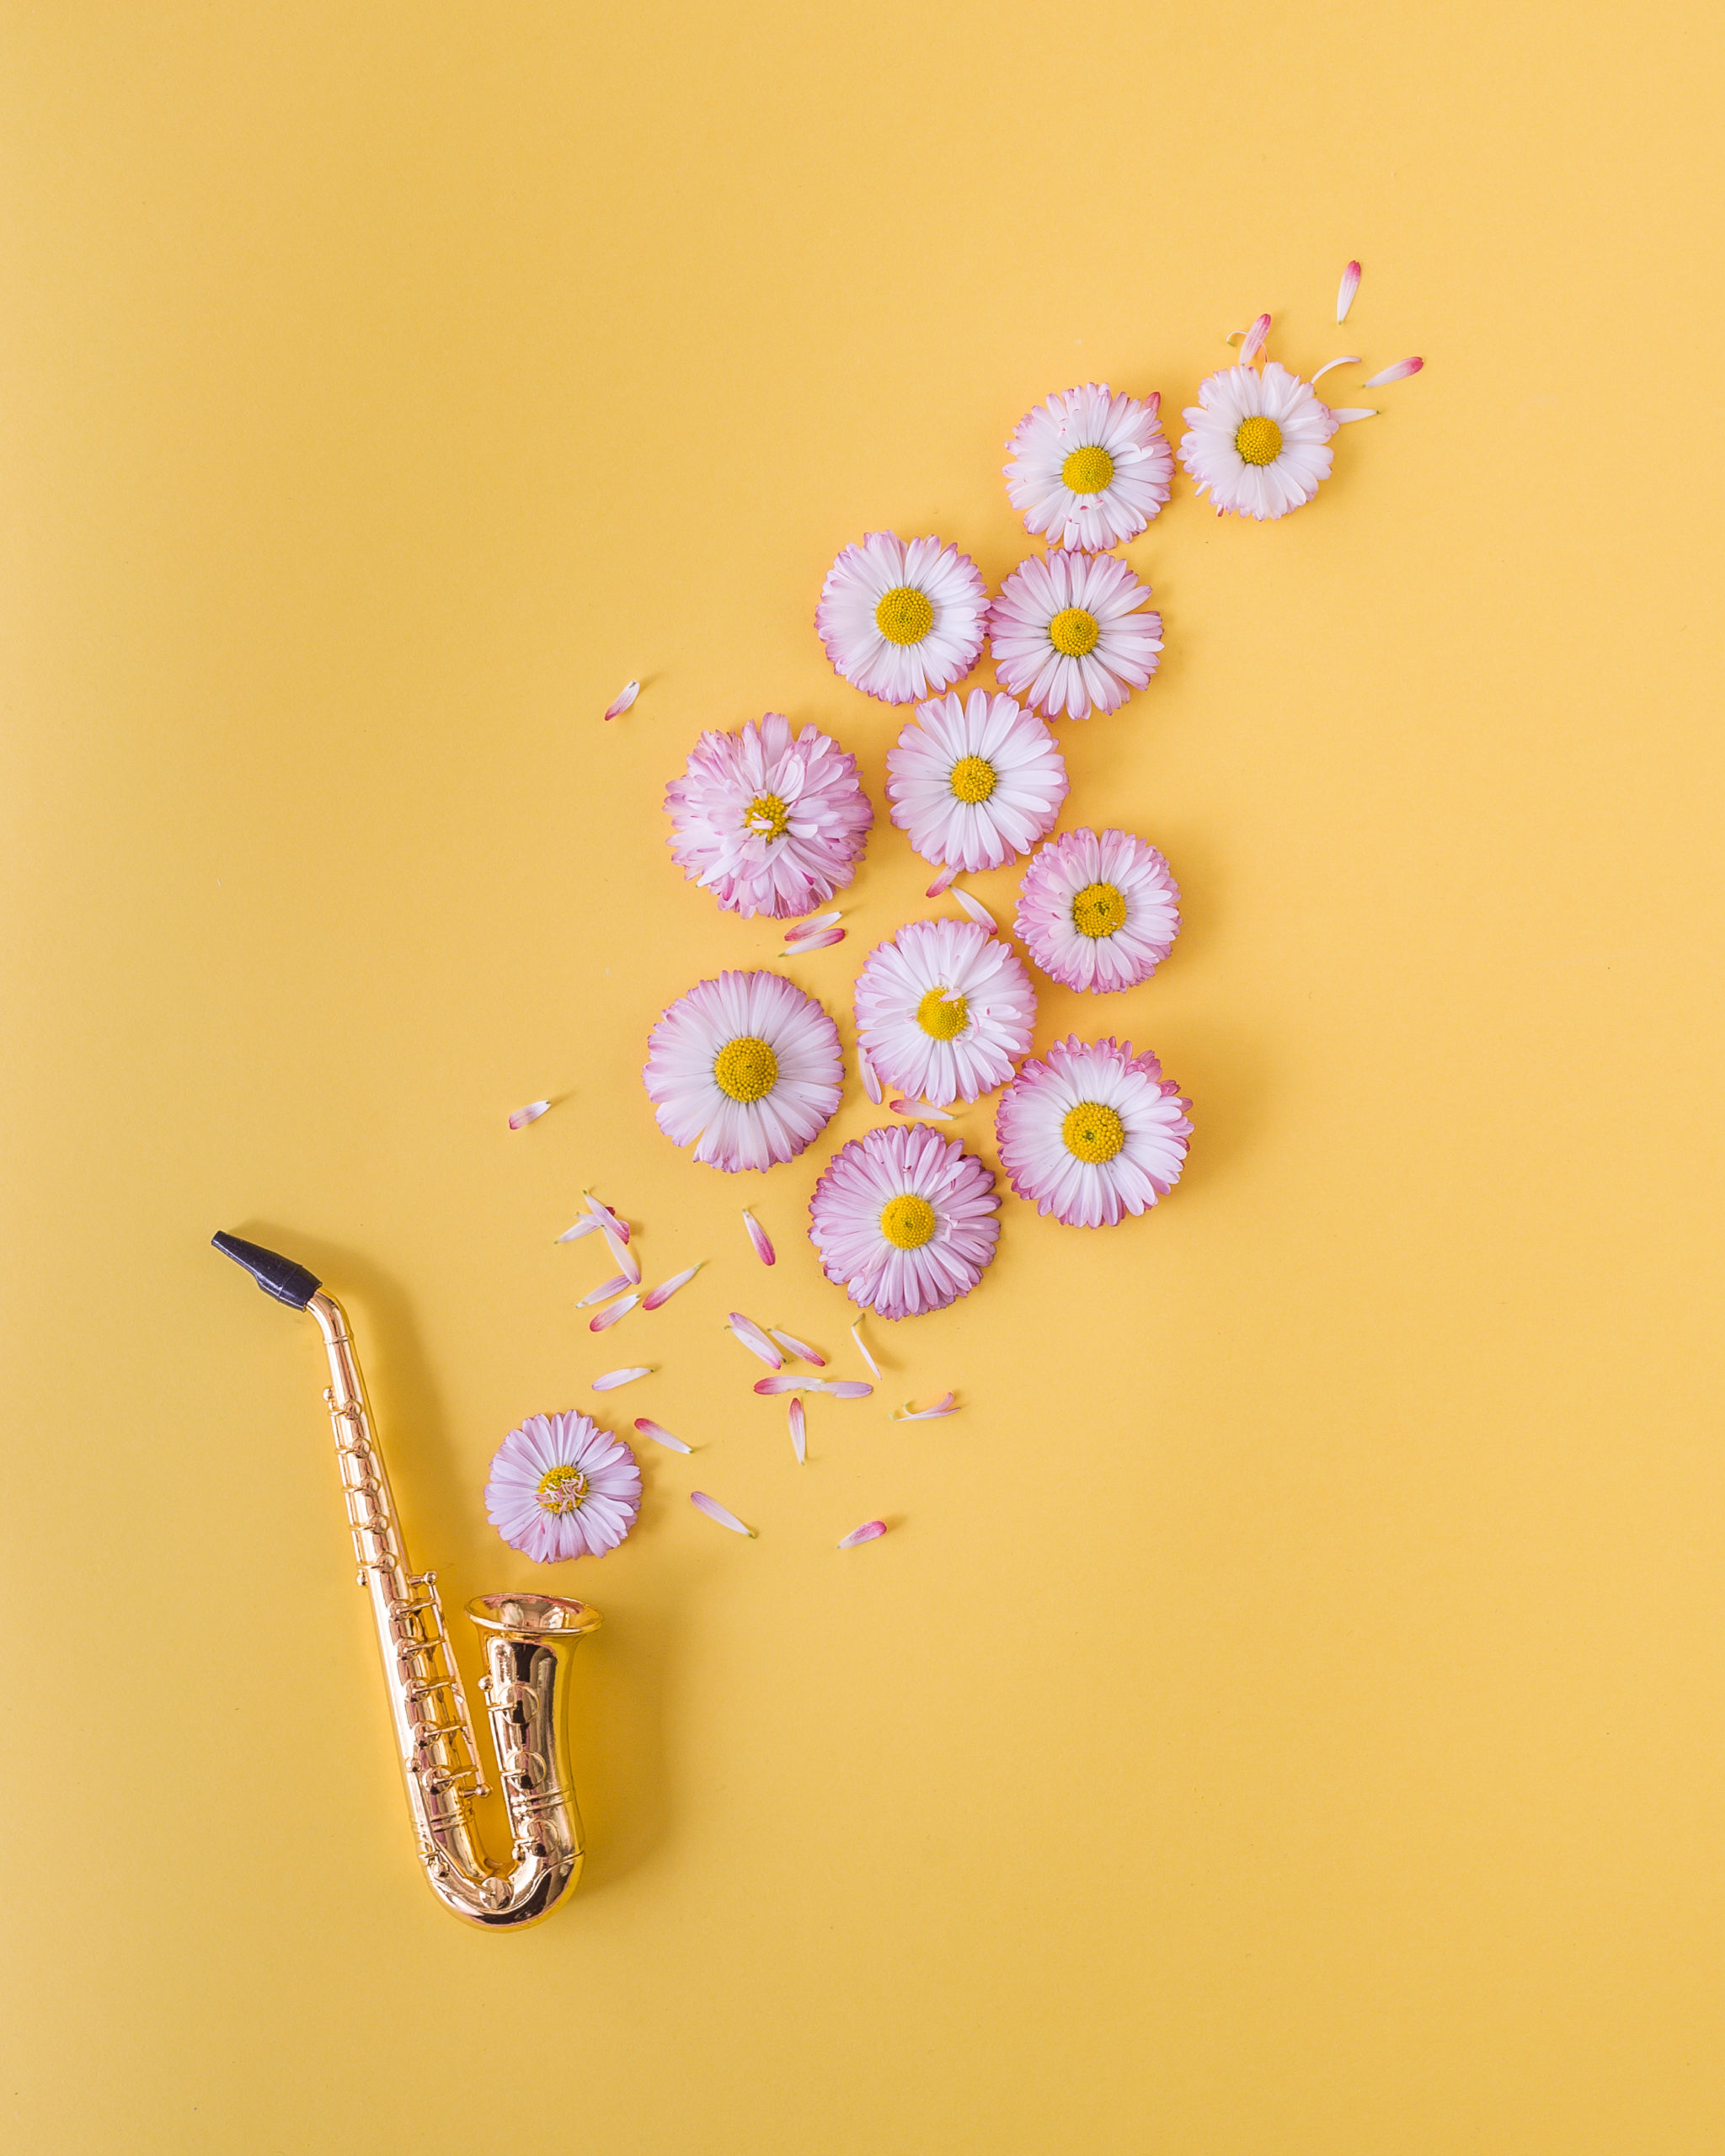 Little golden saxophone and pink daisies on orange background. Postcard concept. Minimalism, soft focus, place for text, close up.